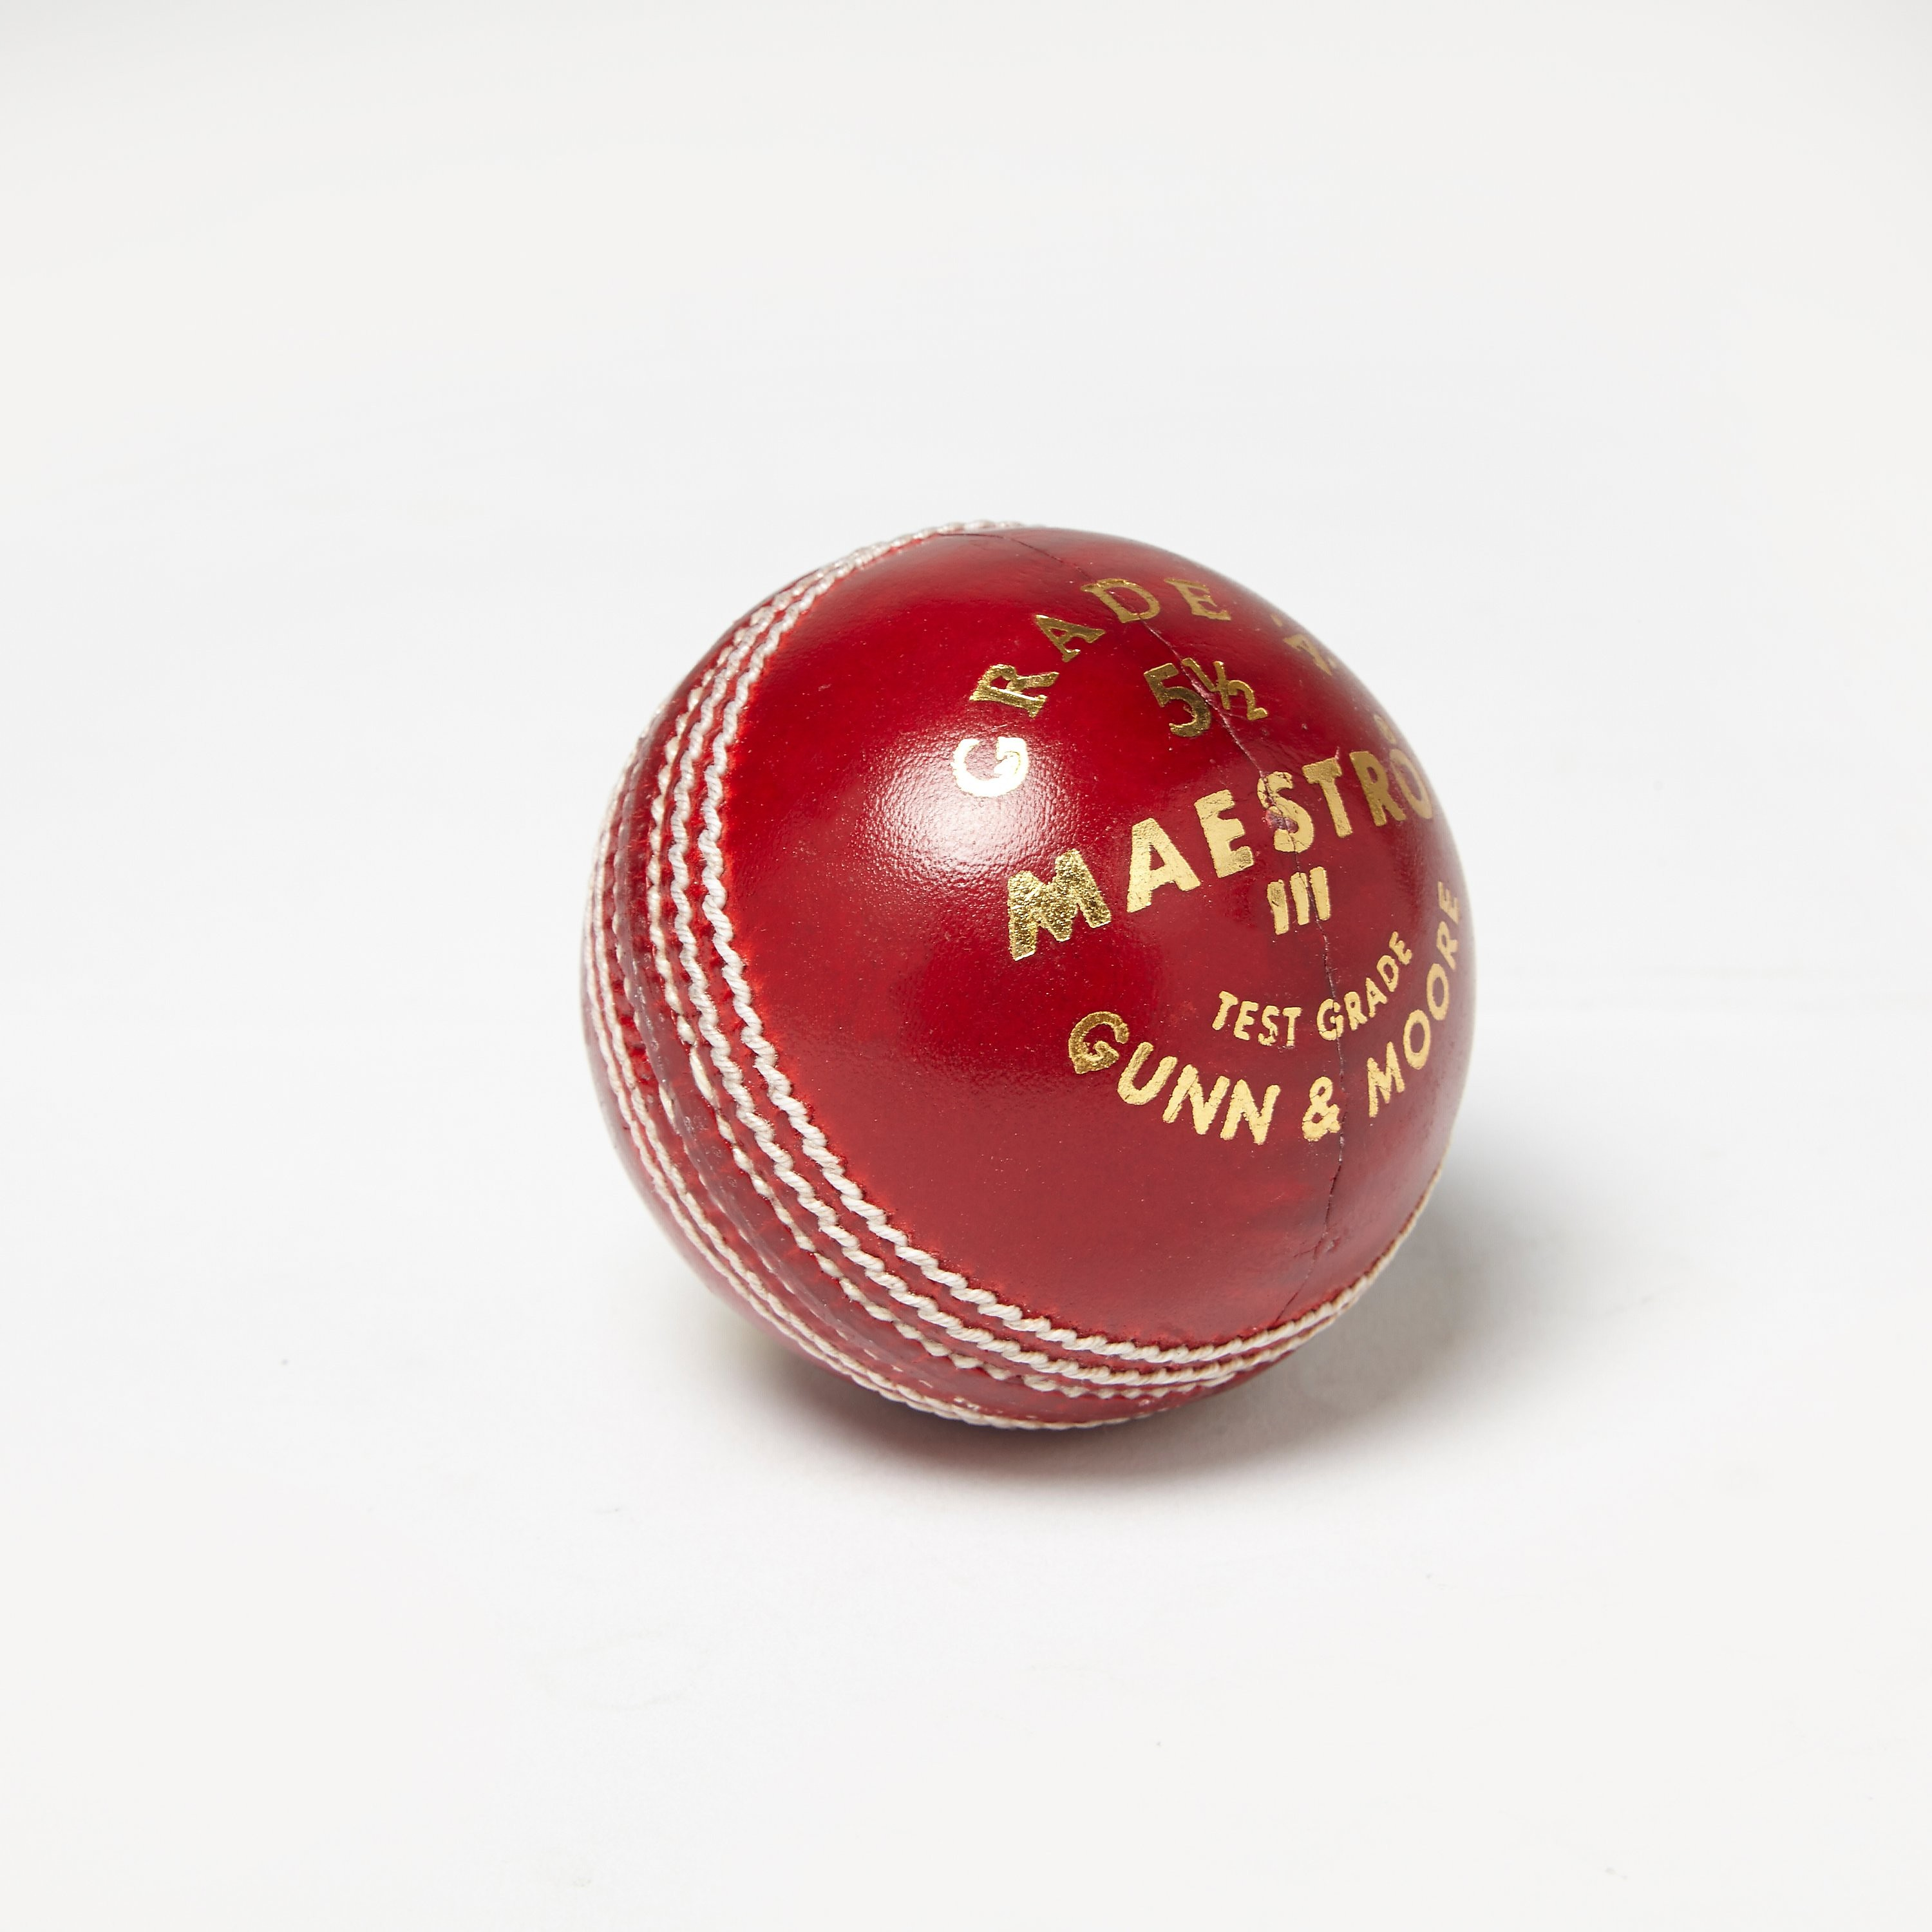 Gunn & Moore Maestro Cricket Ball